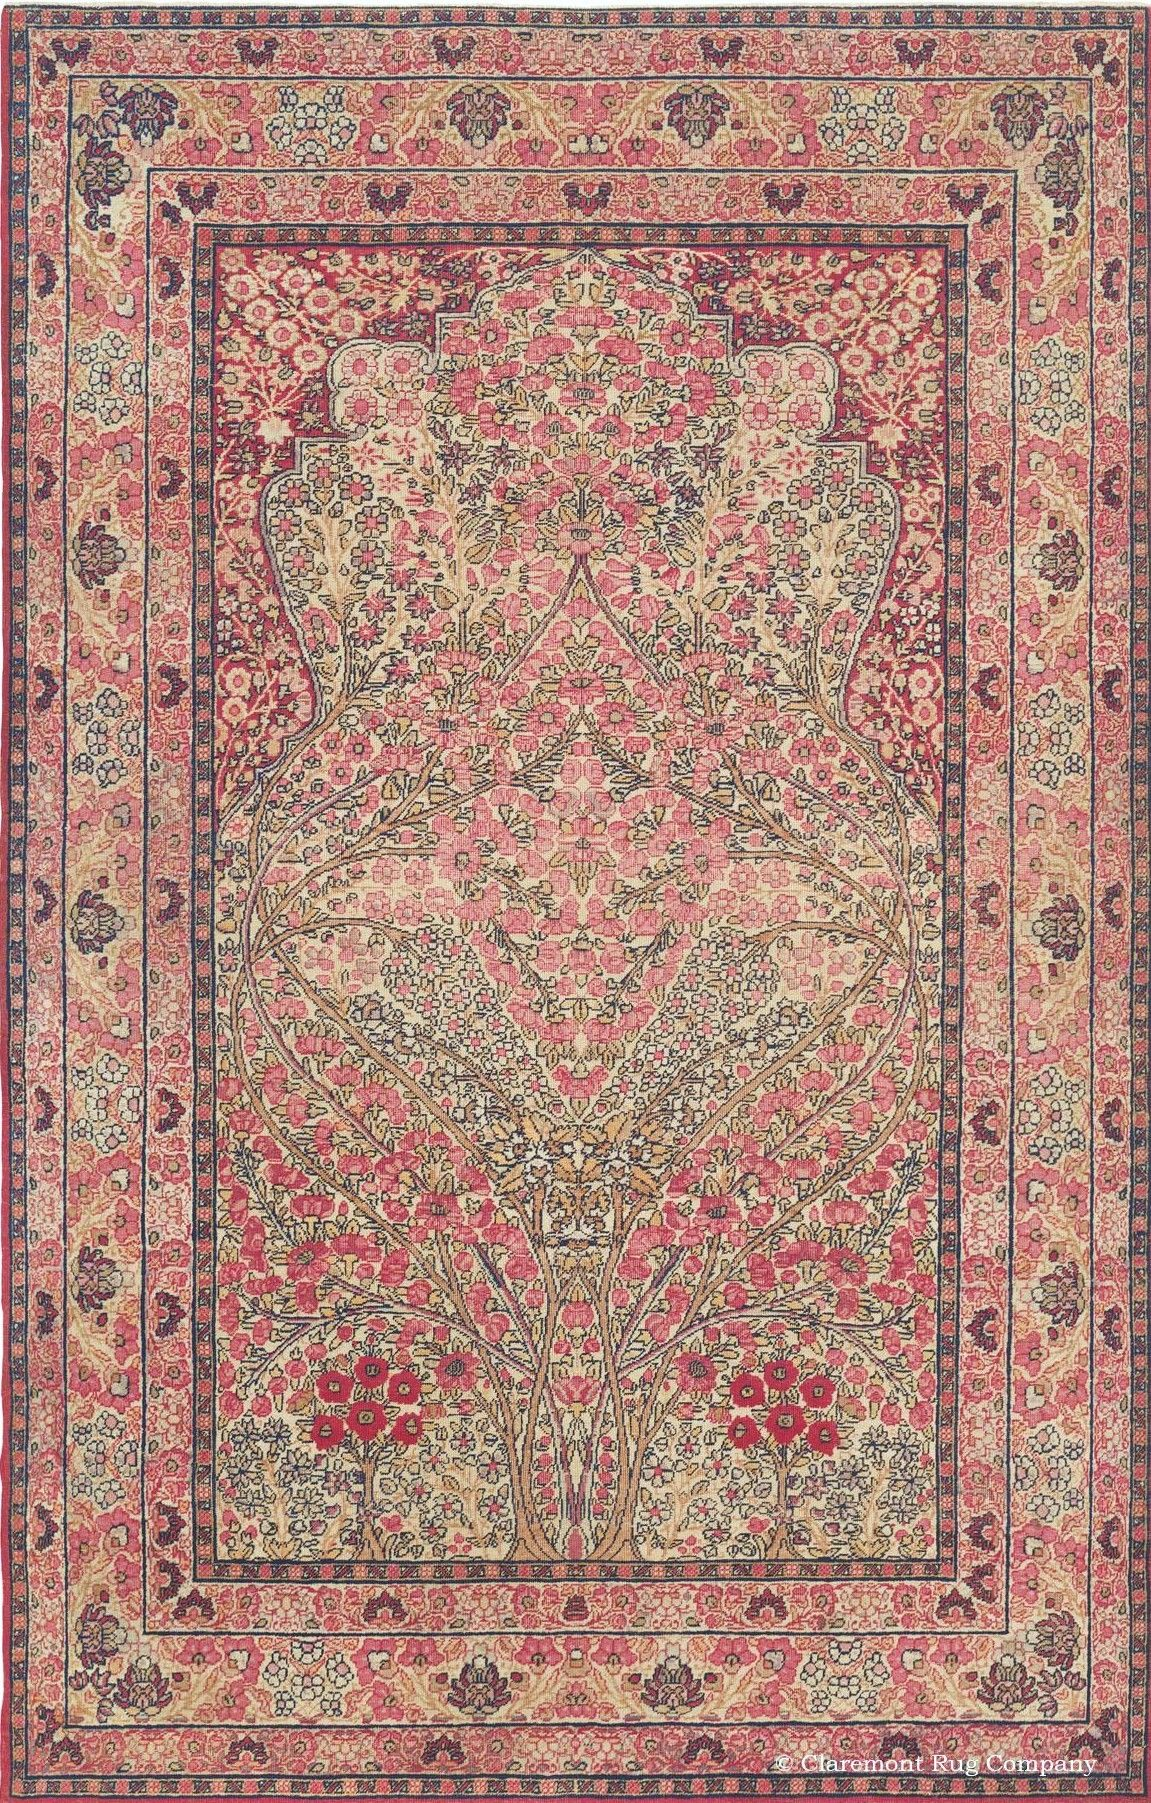 Persian Kerman Laver Rug 9ft 10in X 12ft 4in Circa 1900 Claremont Gallery Antique Persian Carpet Antique Oriental Rugs Antique Carpets